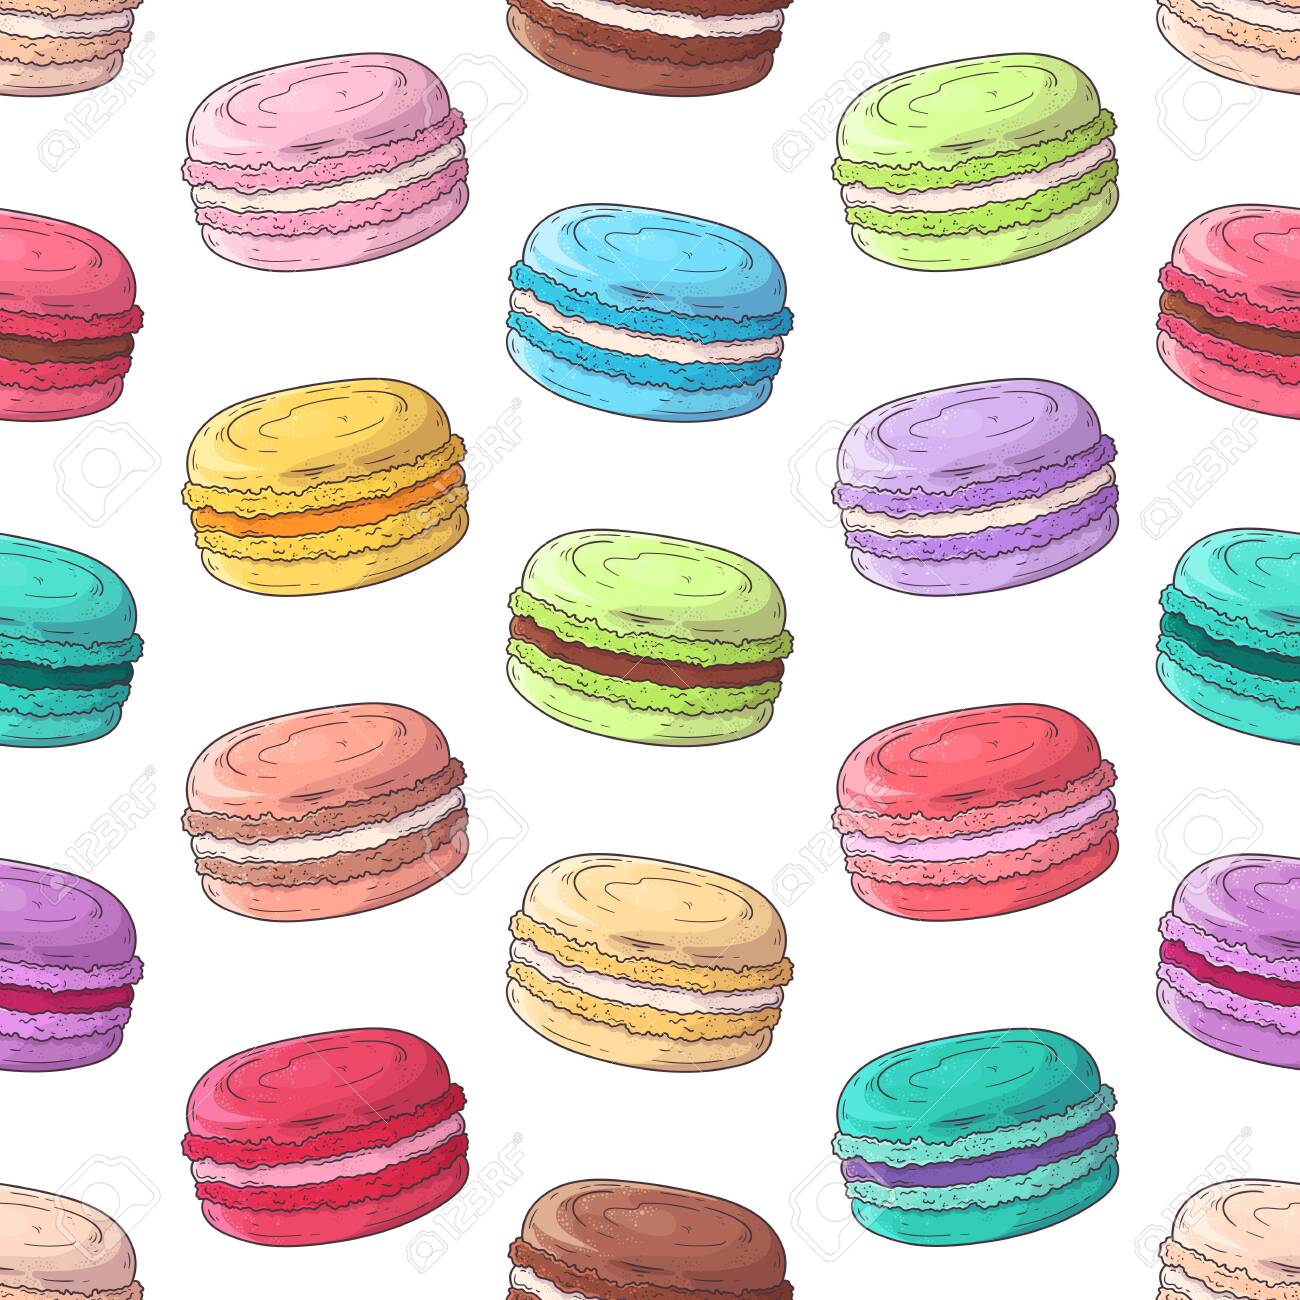 Vector hand drawn pattern. Realistic french dessert - macaroons. Each object can be changed and moved for your design. - 130967082